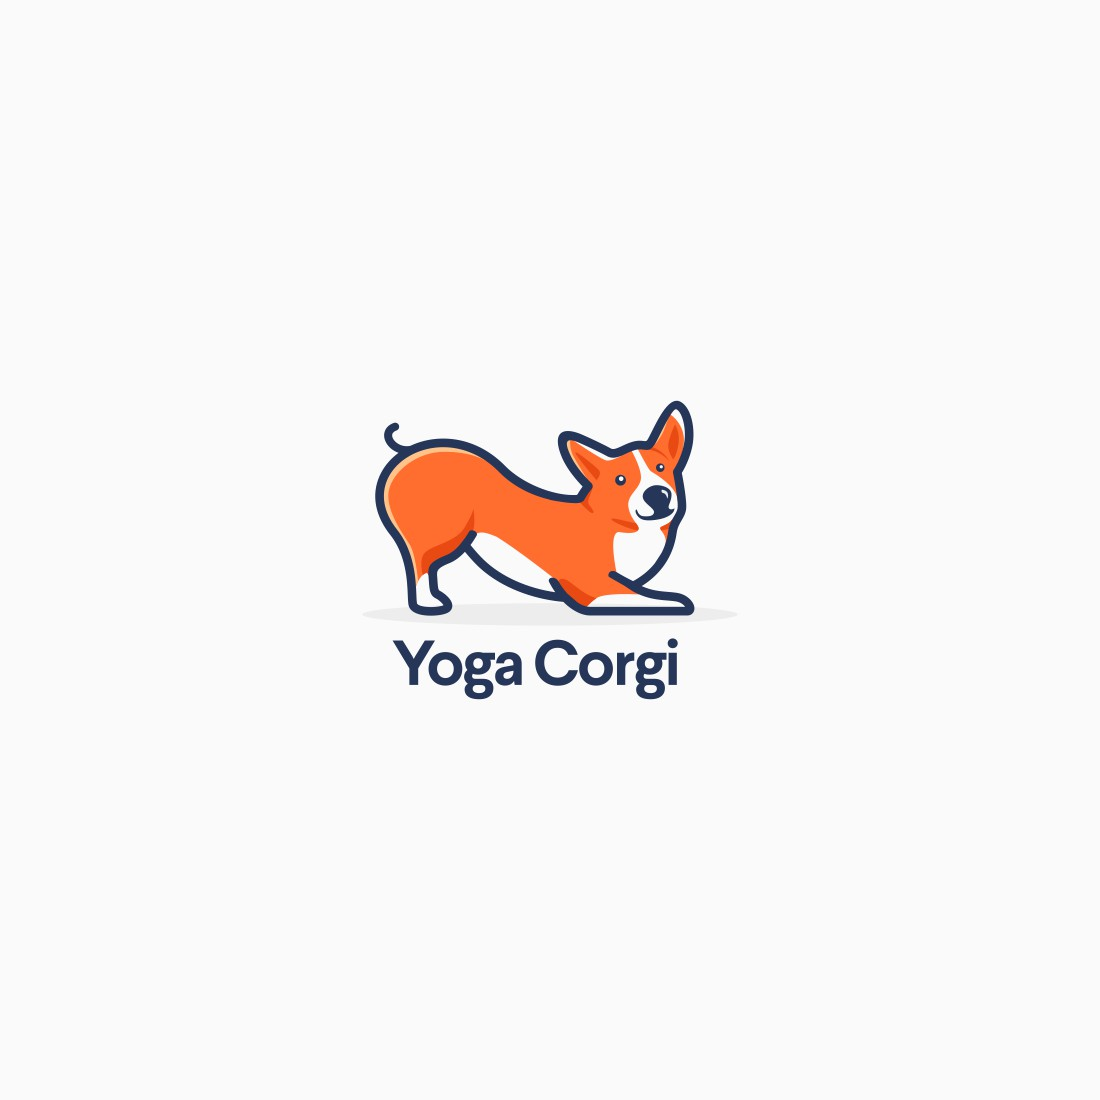 39 dog logos that are more exciting than a W-A-L-K - 99designs Blog